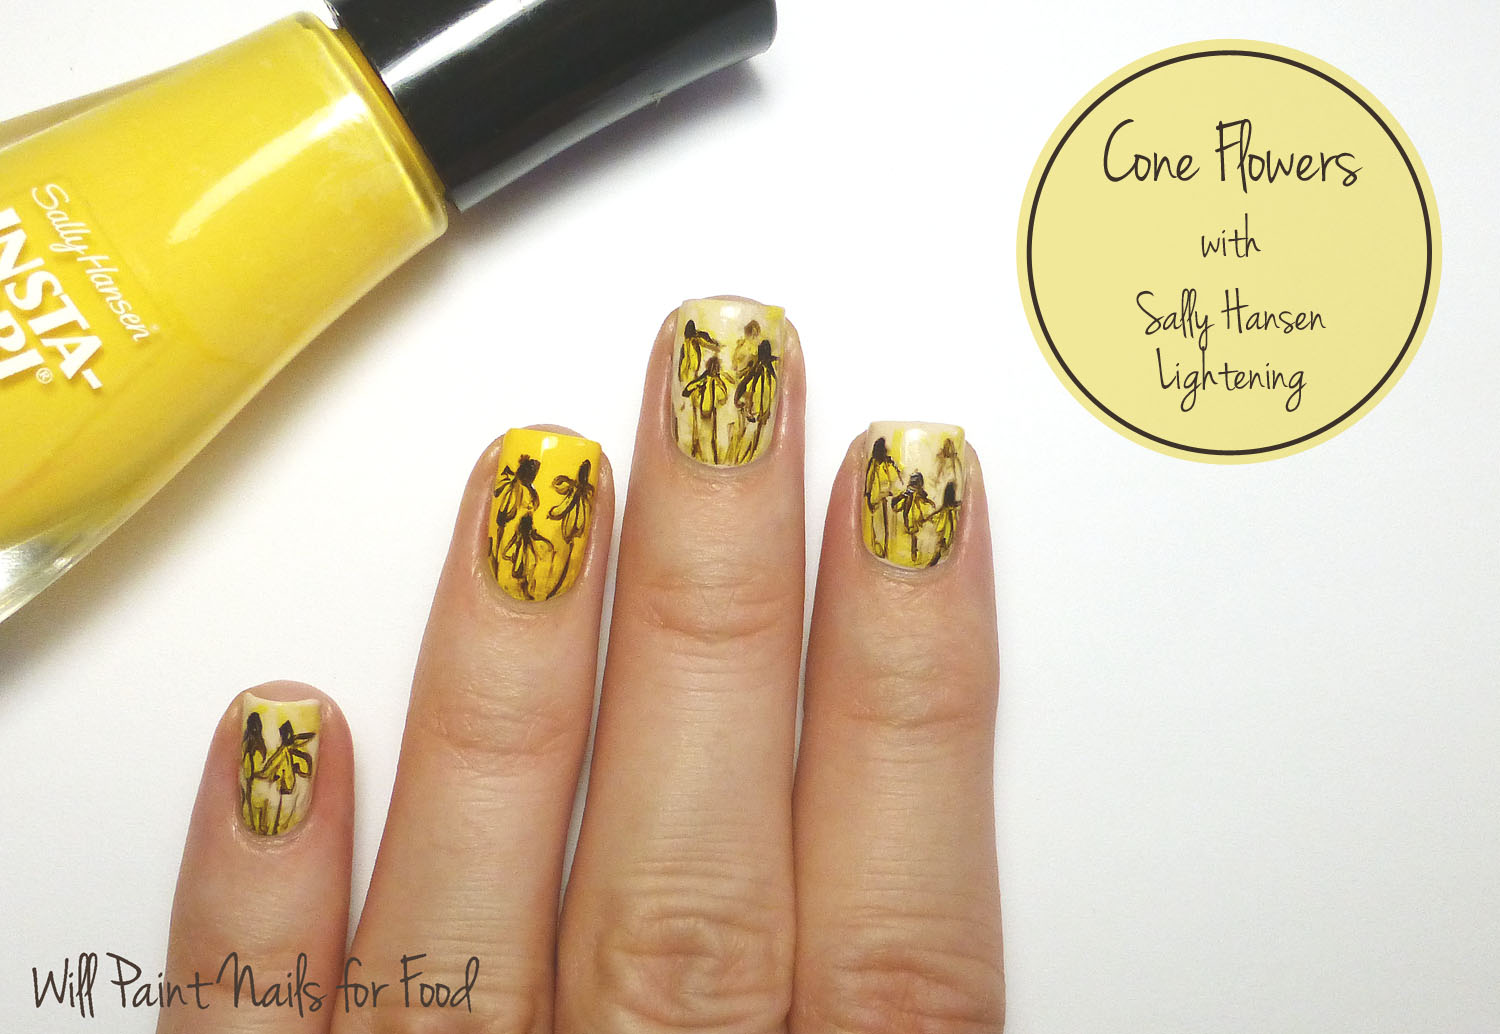 Cone flowers freehand nail art